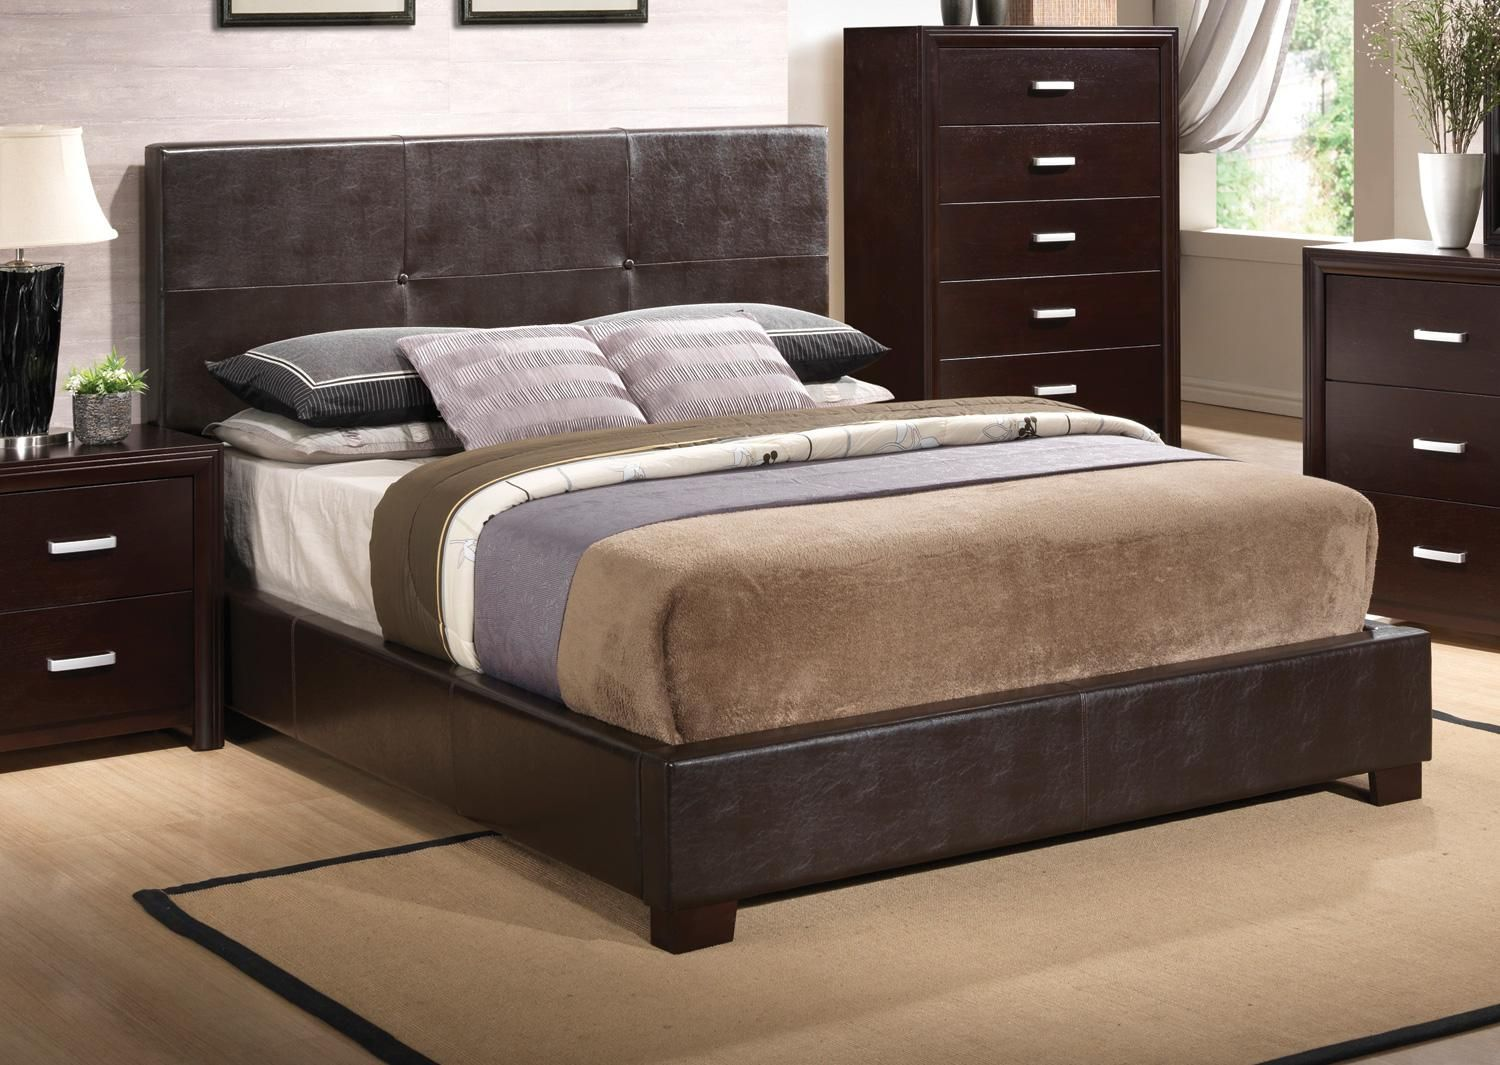 Best Queen Espresso Bed Without Mattress Set In Mmidesigns 400 x 300